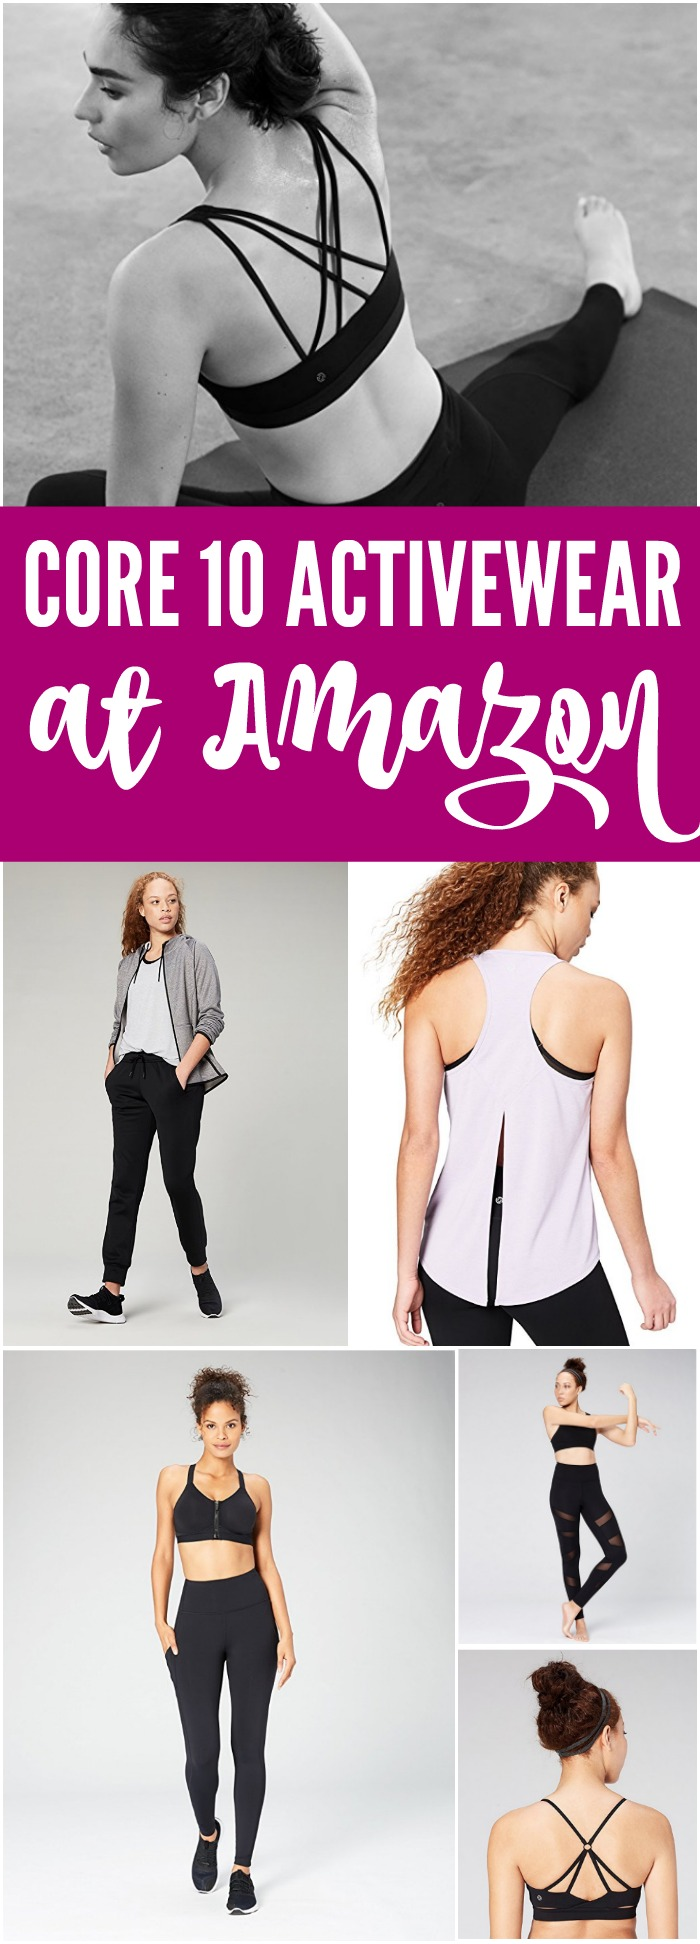 Core 10 Activewear at Amazon! Comfortable and Moveable Workout Clothing and Attire for Women including Leggings, Yoga Pants, Tanks, Sports Bras, and Joggers!